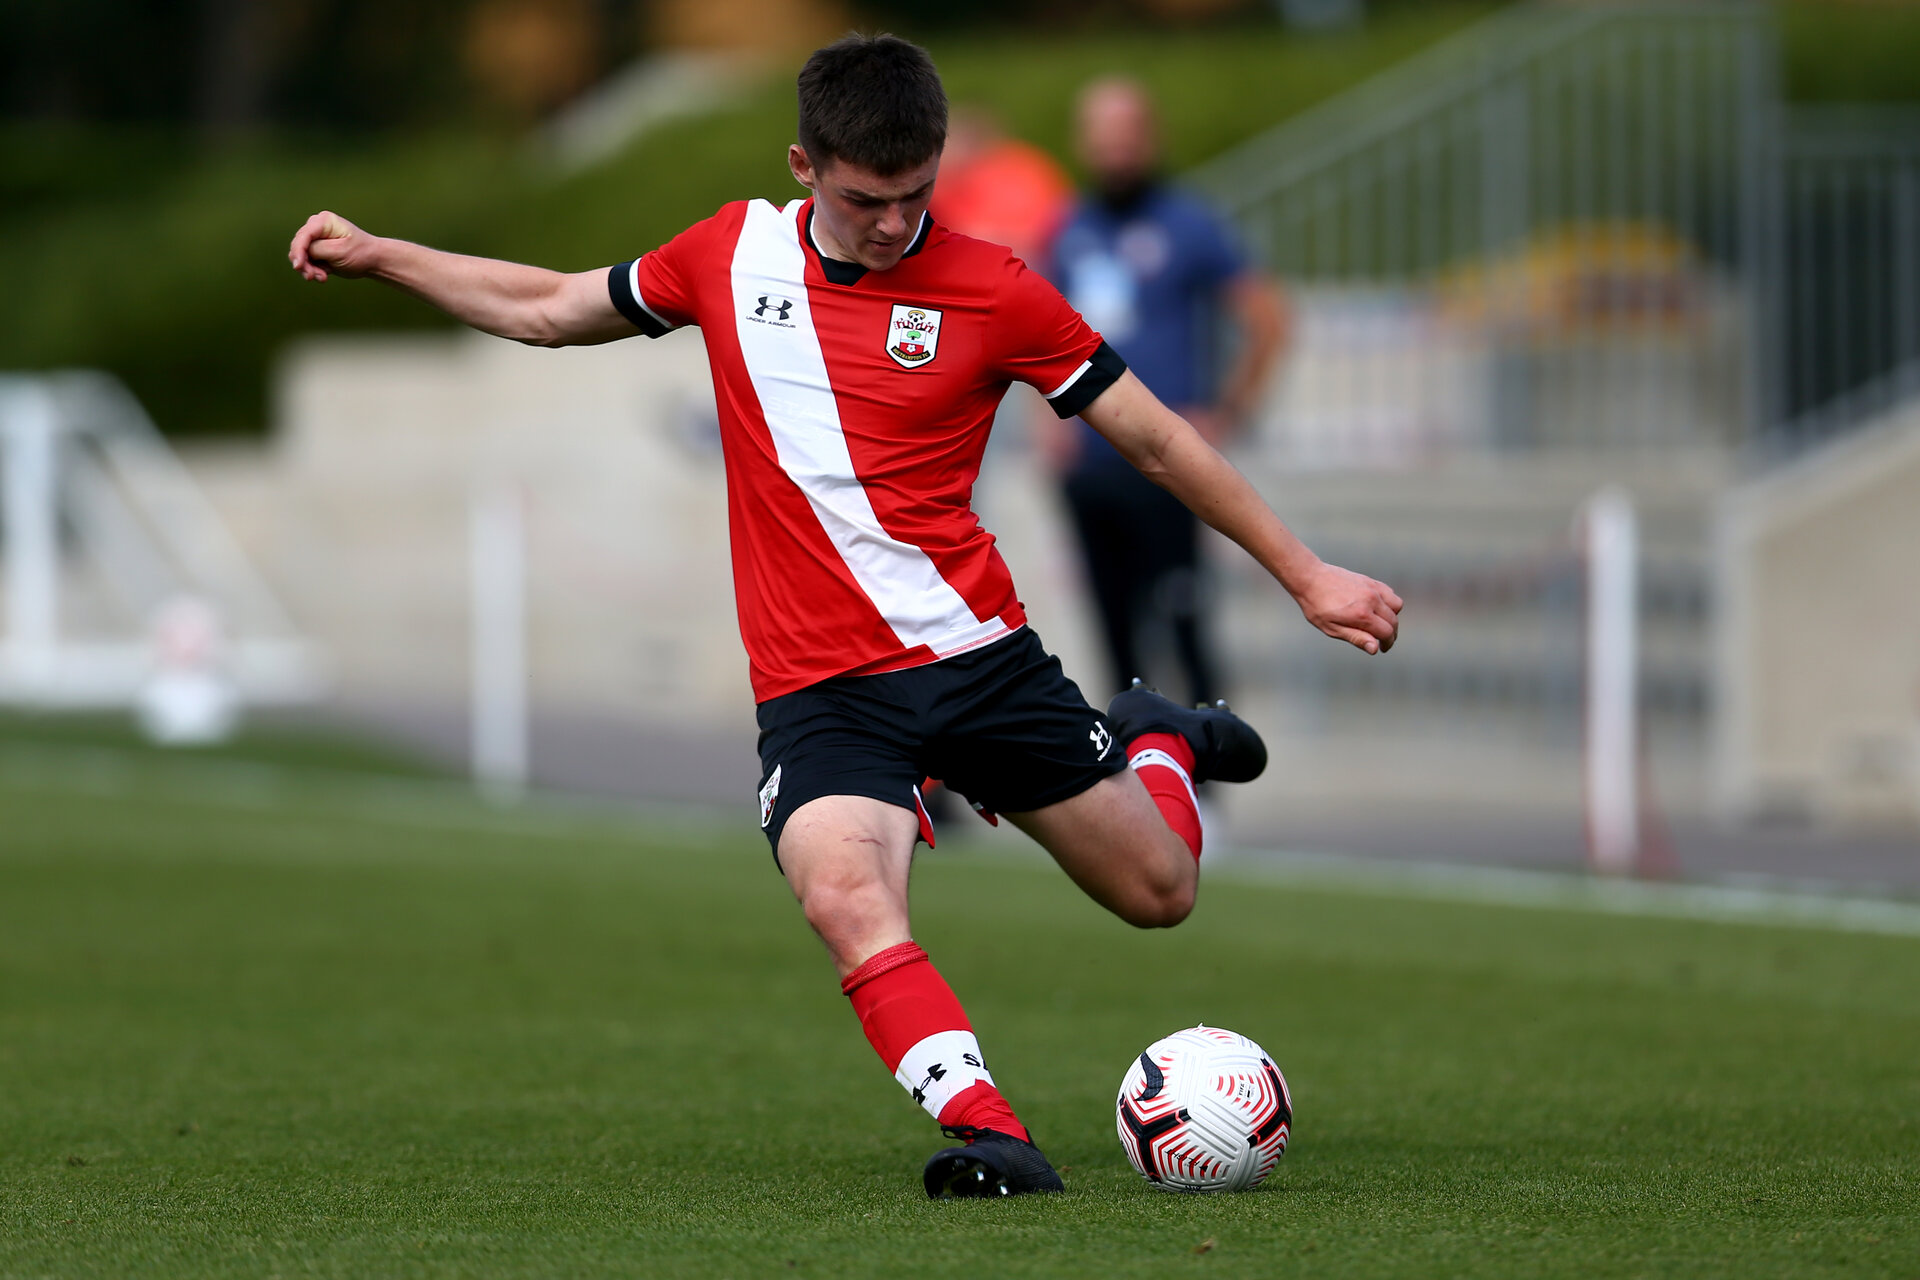 SOUTHAMPTON, ENGLAND - SEPTEMBER 19: Matt Carson of Southampton during the Premier League U18 match between Southampton FC U18 and Crystal Palace FC at Staplewood Training Ground on September 19, 2020 in Southampton, England. (Photo by Isabelle Field/Southampton FC via Getty Images)